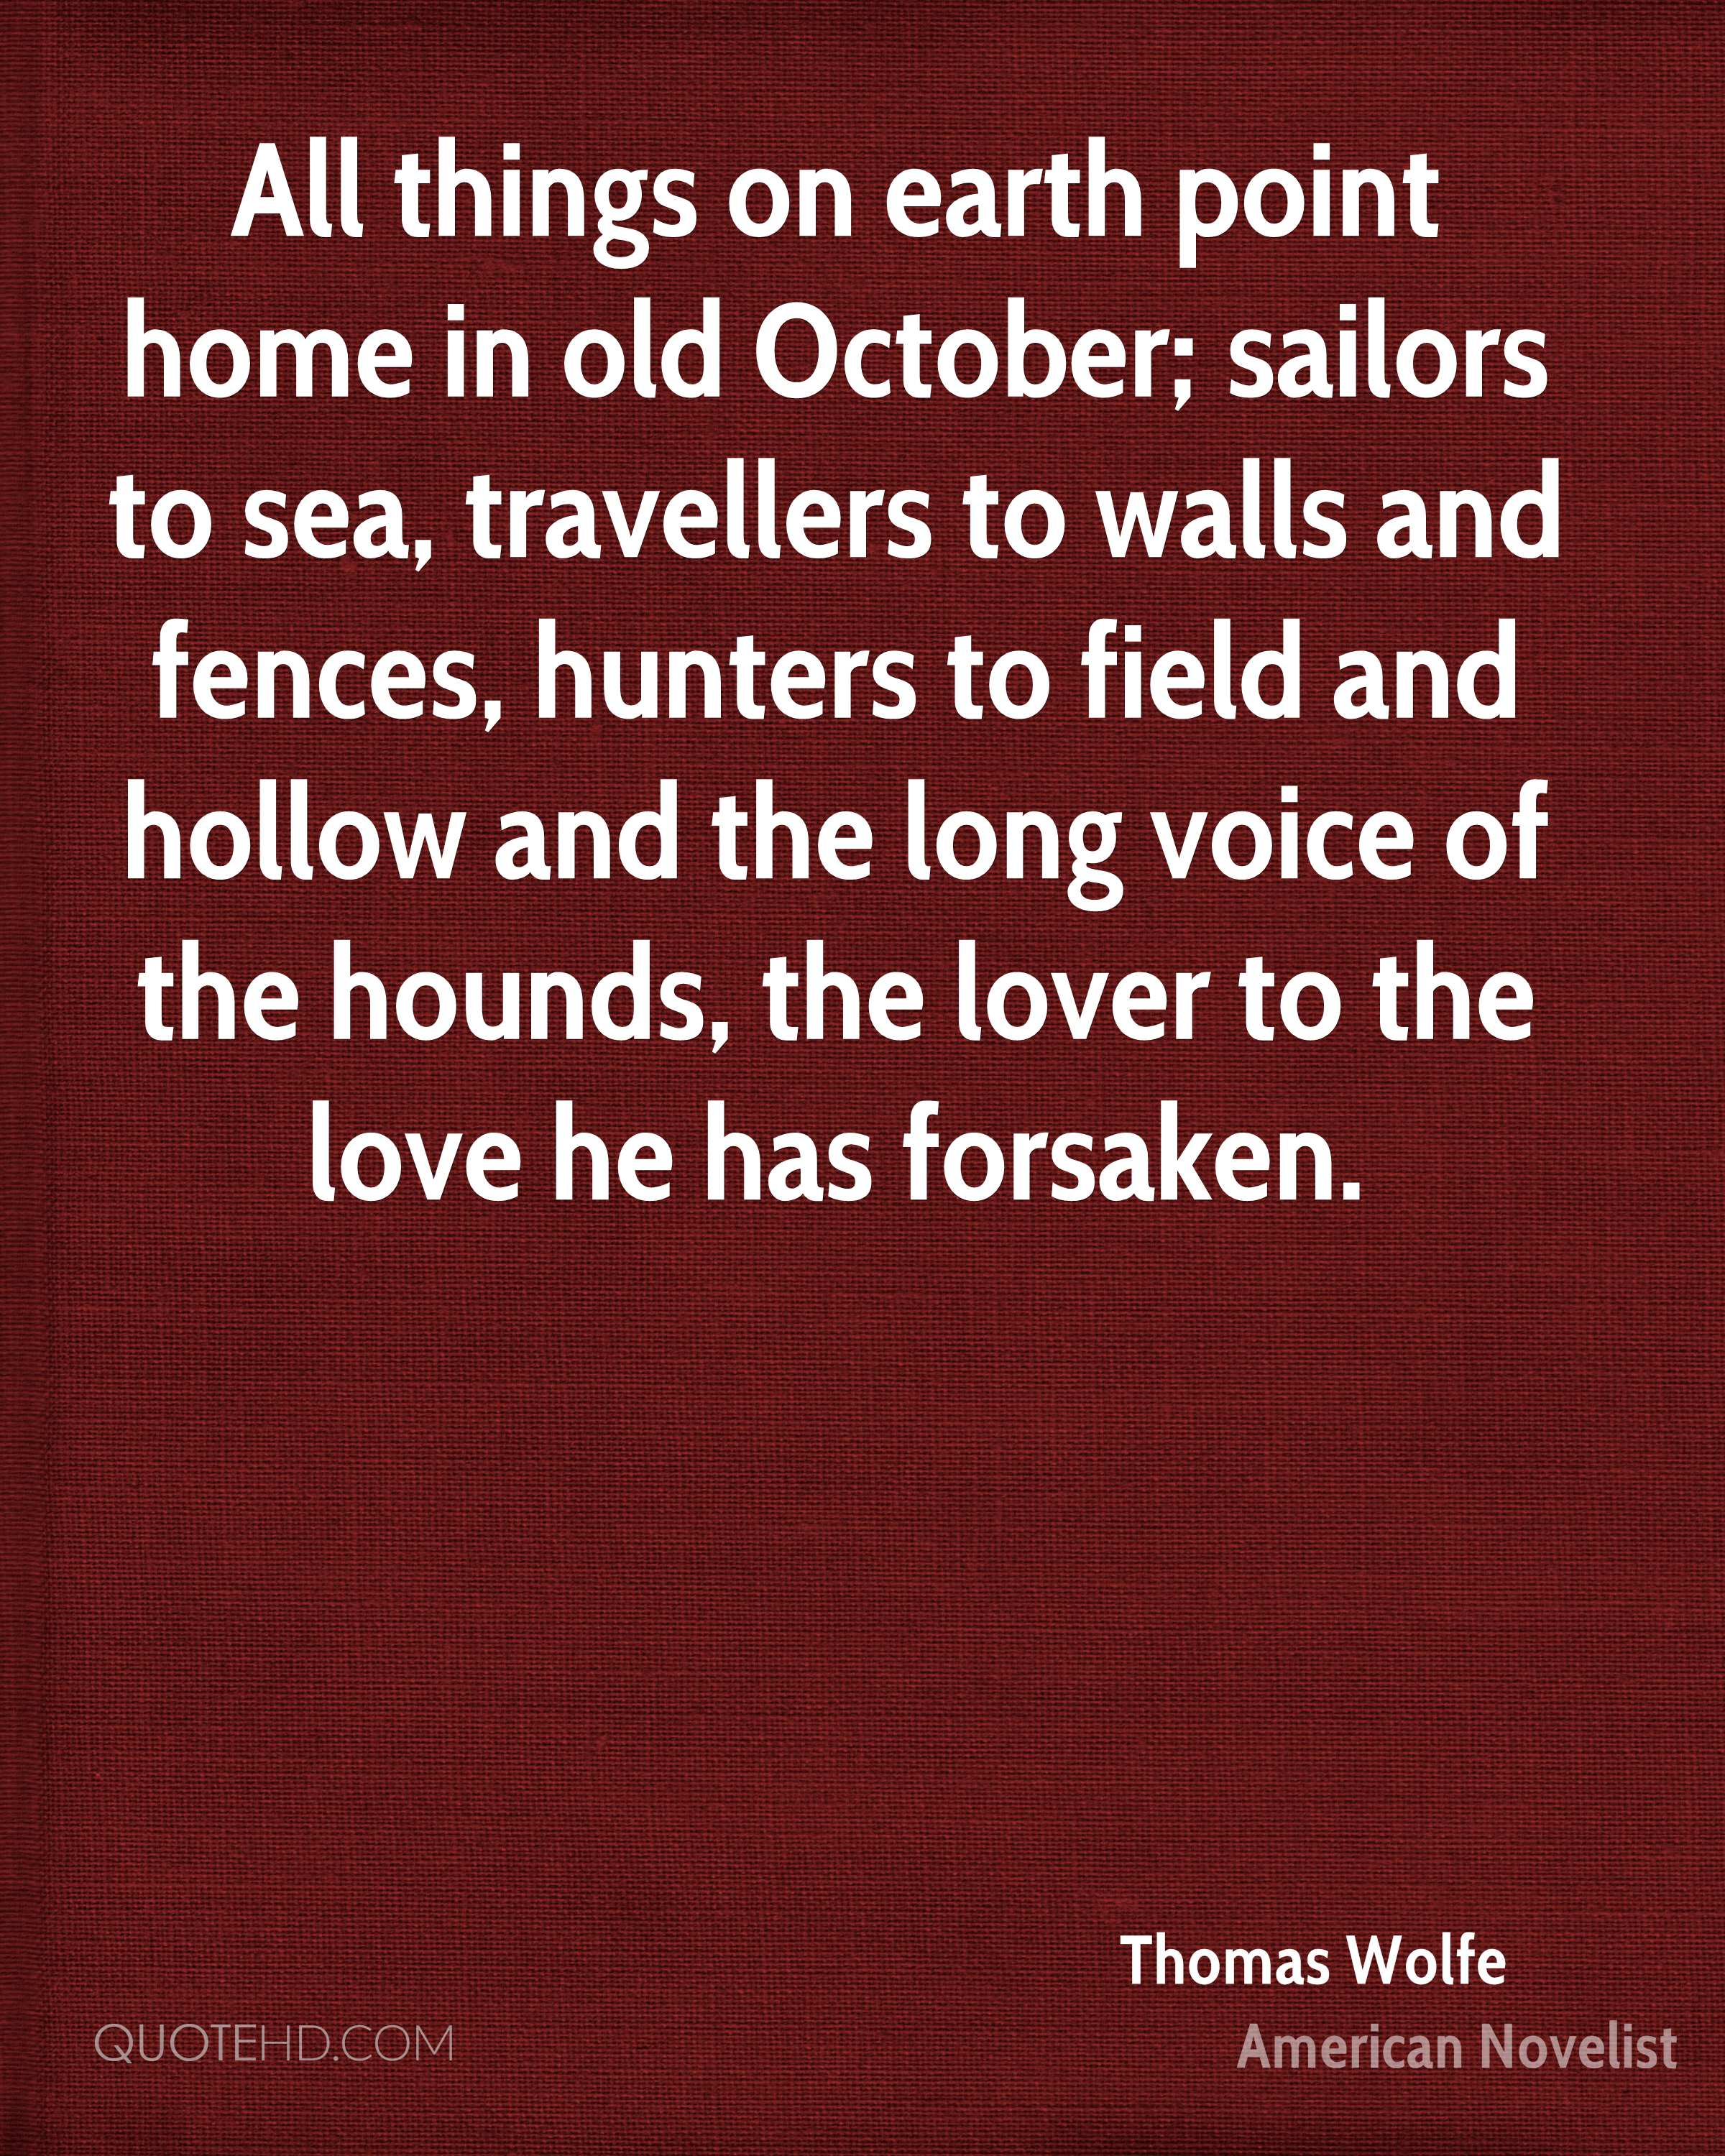 All things on earth point home in old October; sailors to sea, travellers to walls and fences, hunters to field and hollow and the long voice of the hounds, the lover to the love he has forsaken.